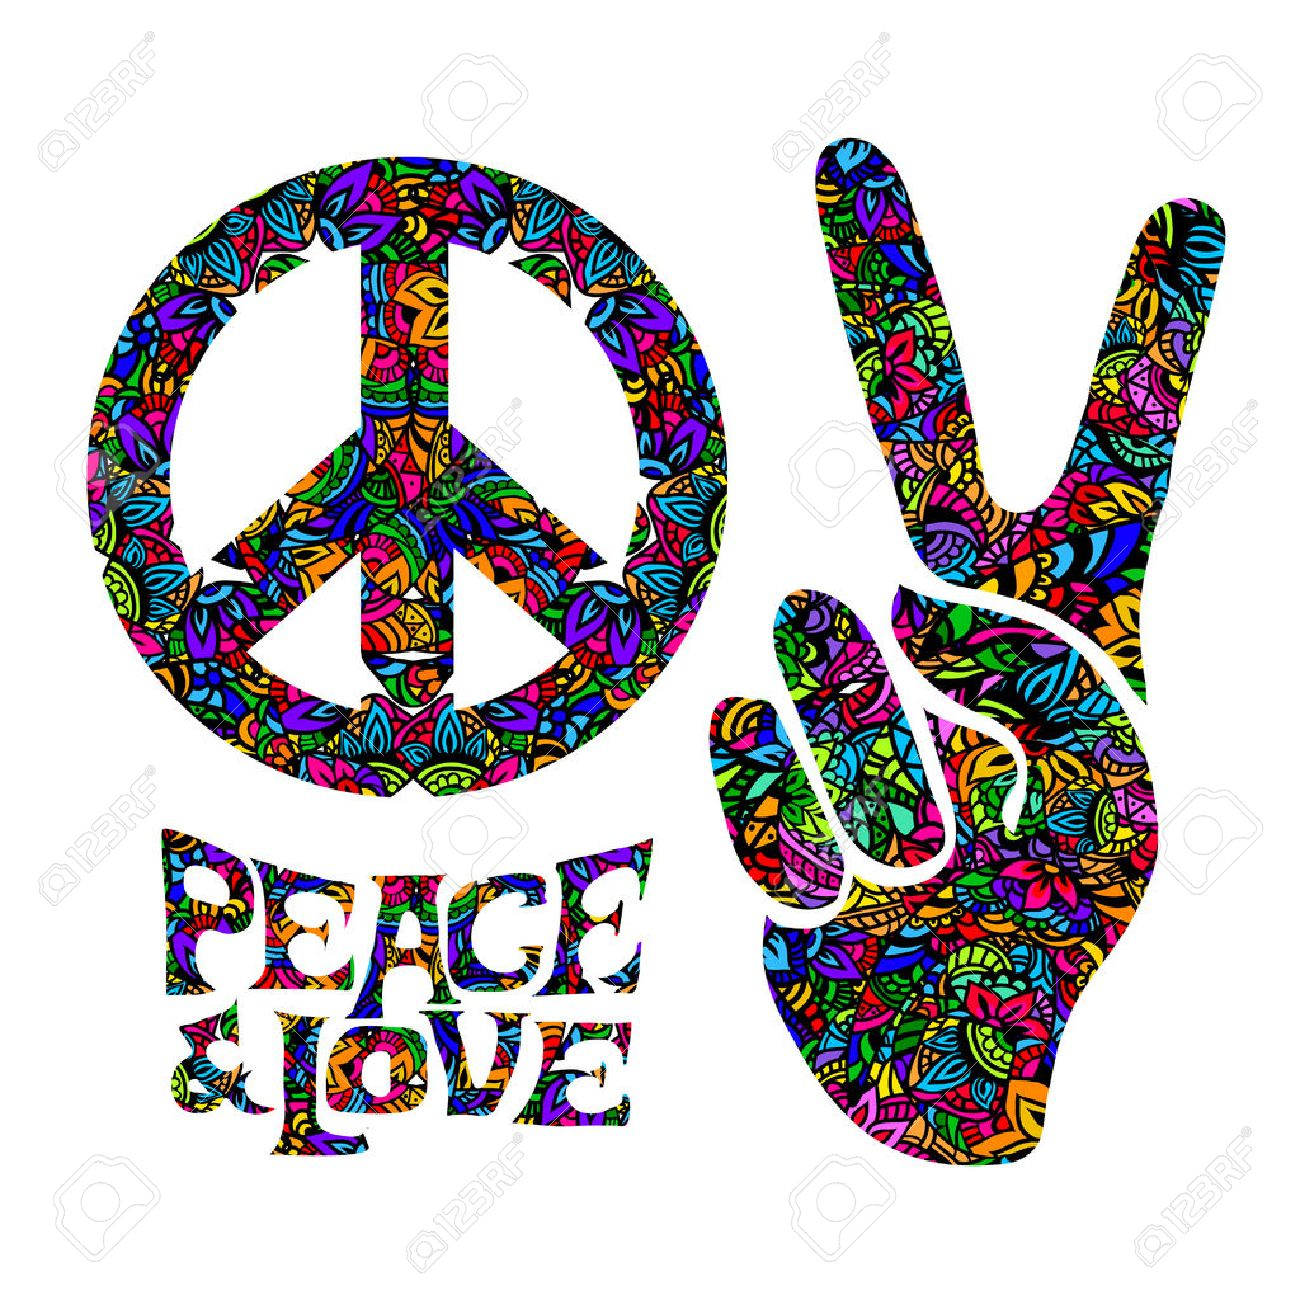 Hippie Symbols Two Fingers As A Sign Of Victory A Sign Of Pacific